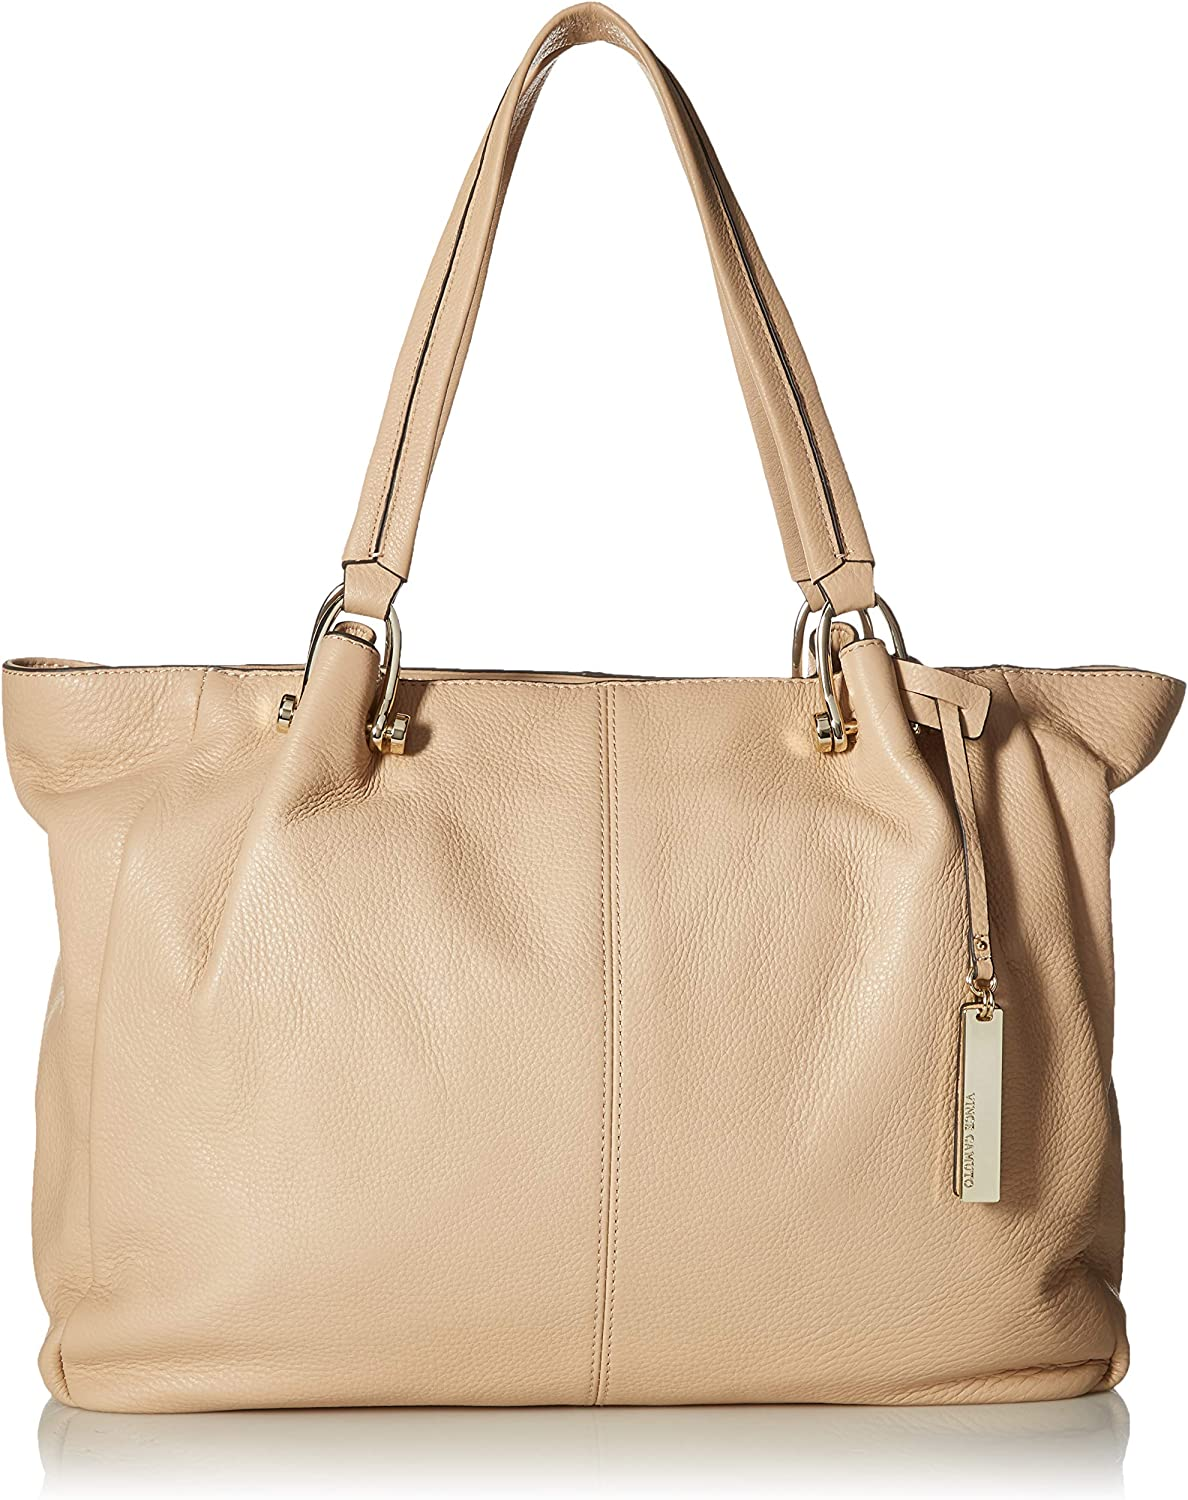 Vince Camuto Helen Tote